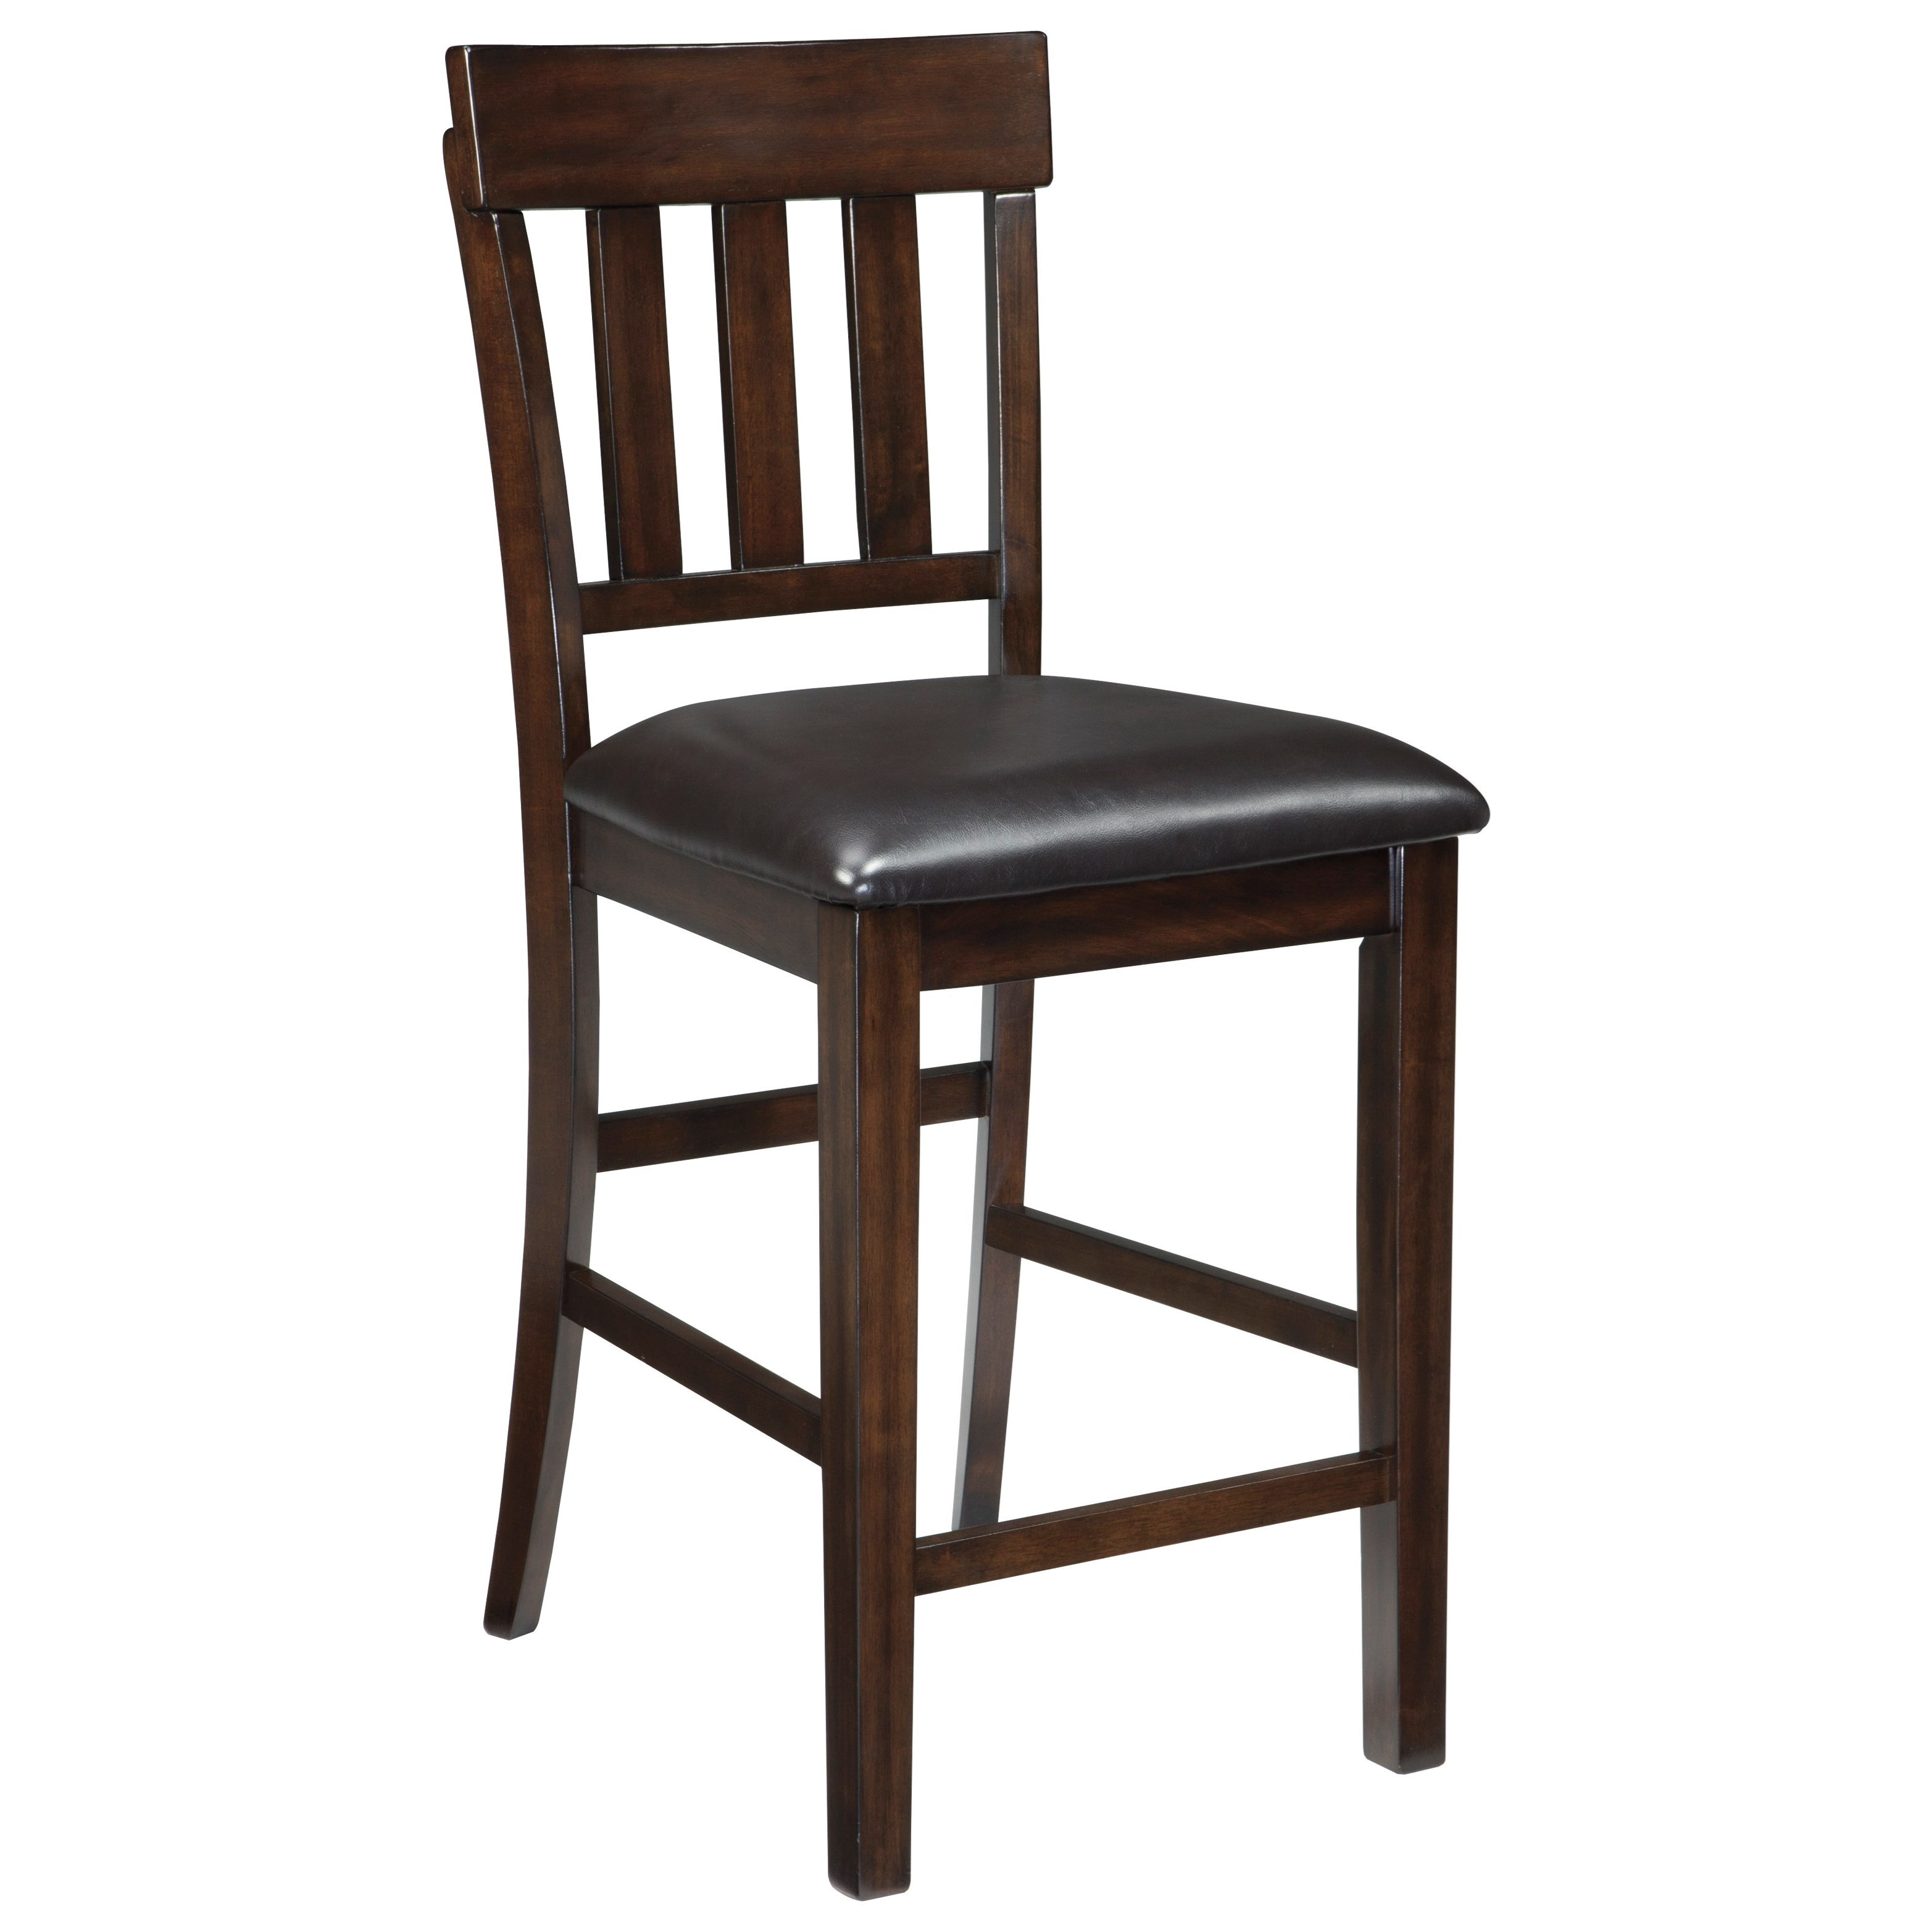 Haddigan Upholstered Barstool by Signature Design by Ashley at Sparks HomeStore